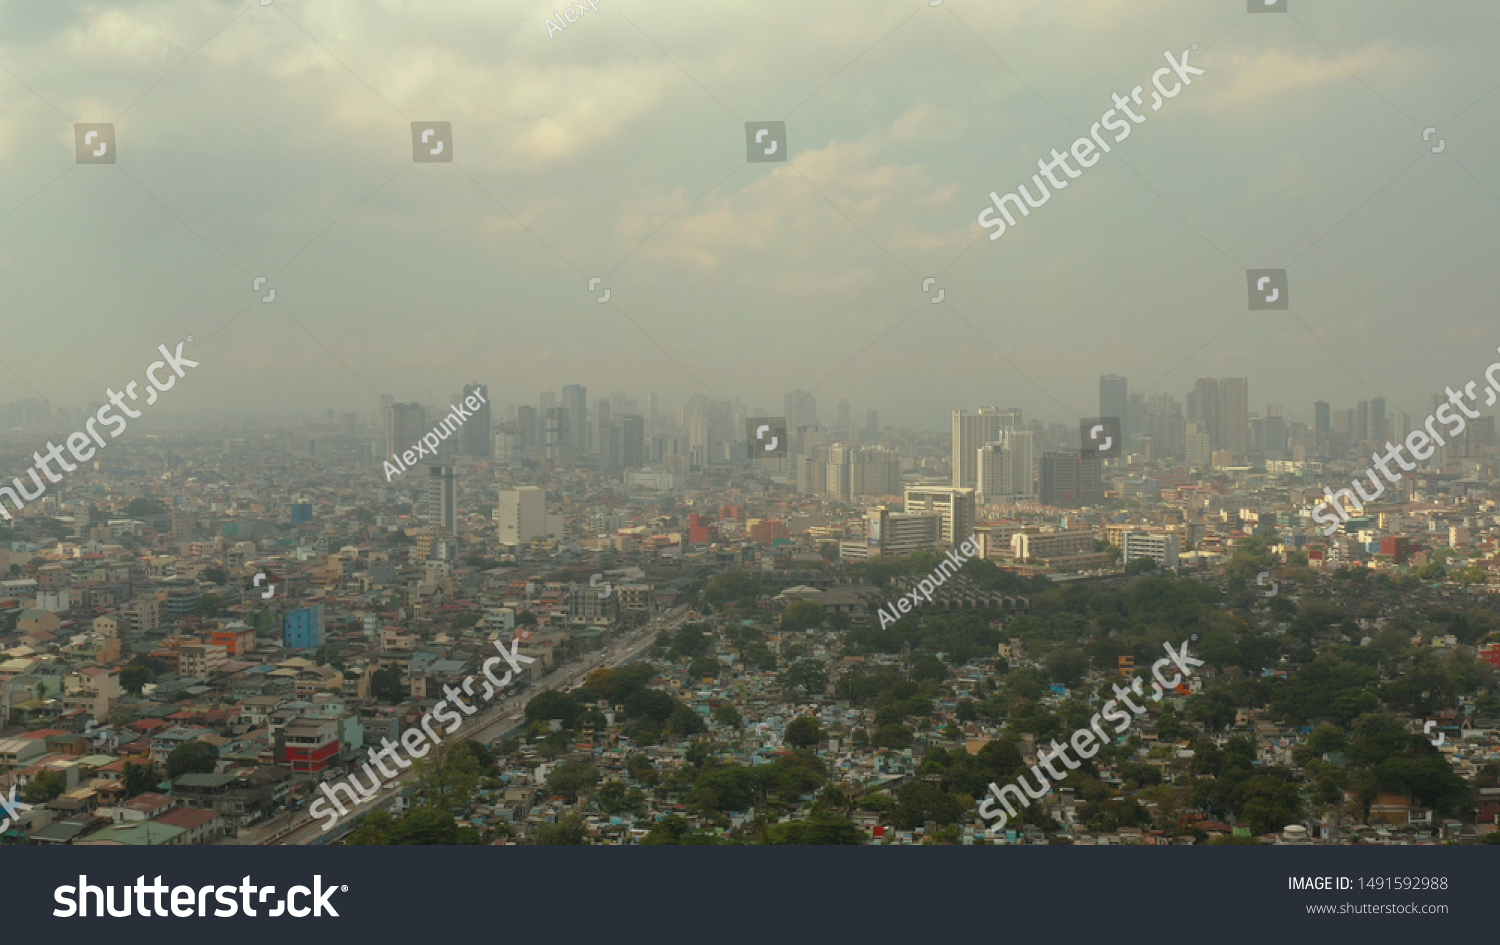 Manila North Cemetery and Cityscape of Makati, the business center of Manila, view from above. Asian metropolis. Travel vacation concept. #1491592988